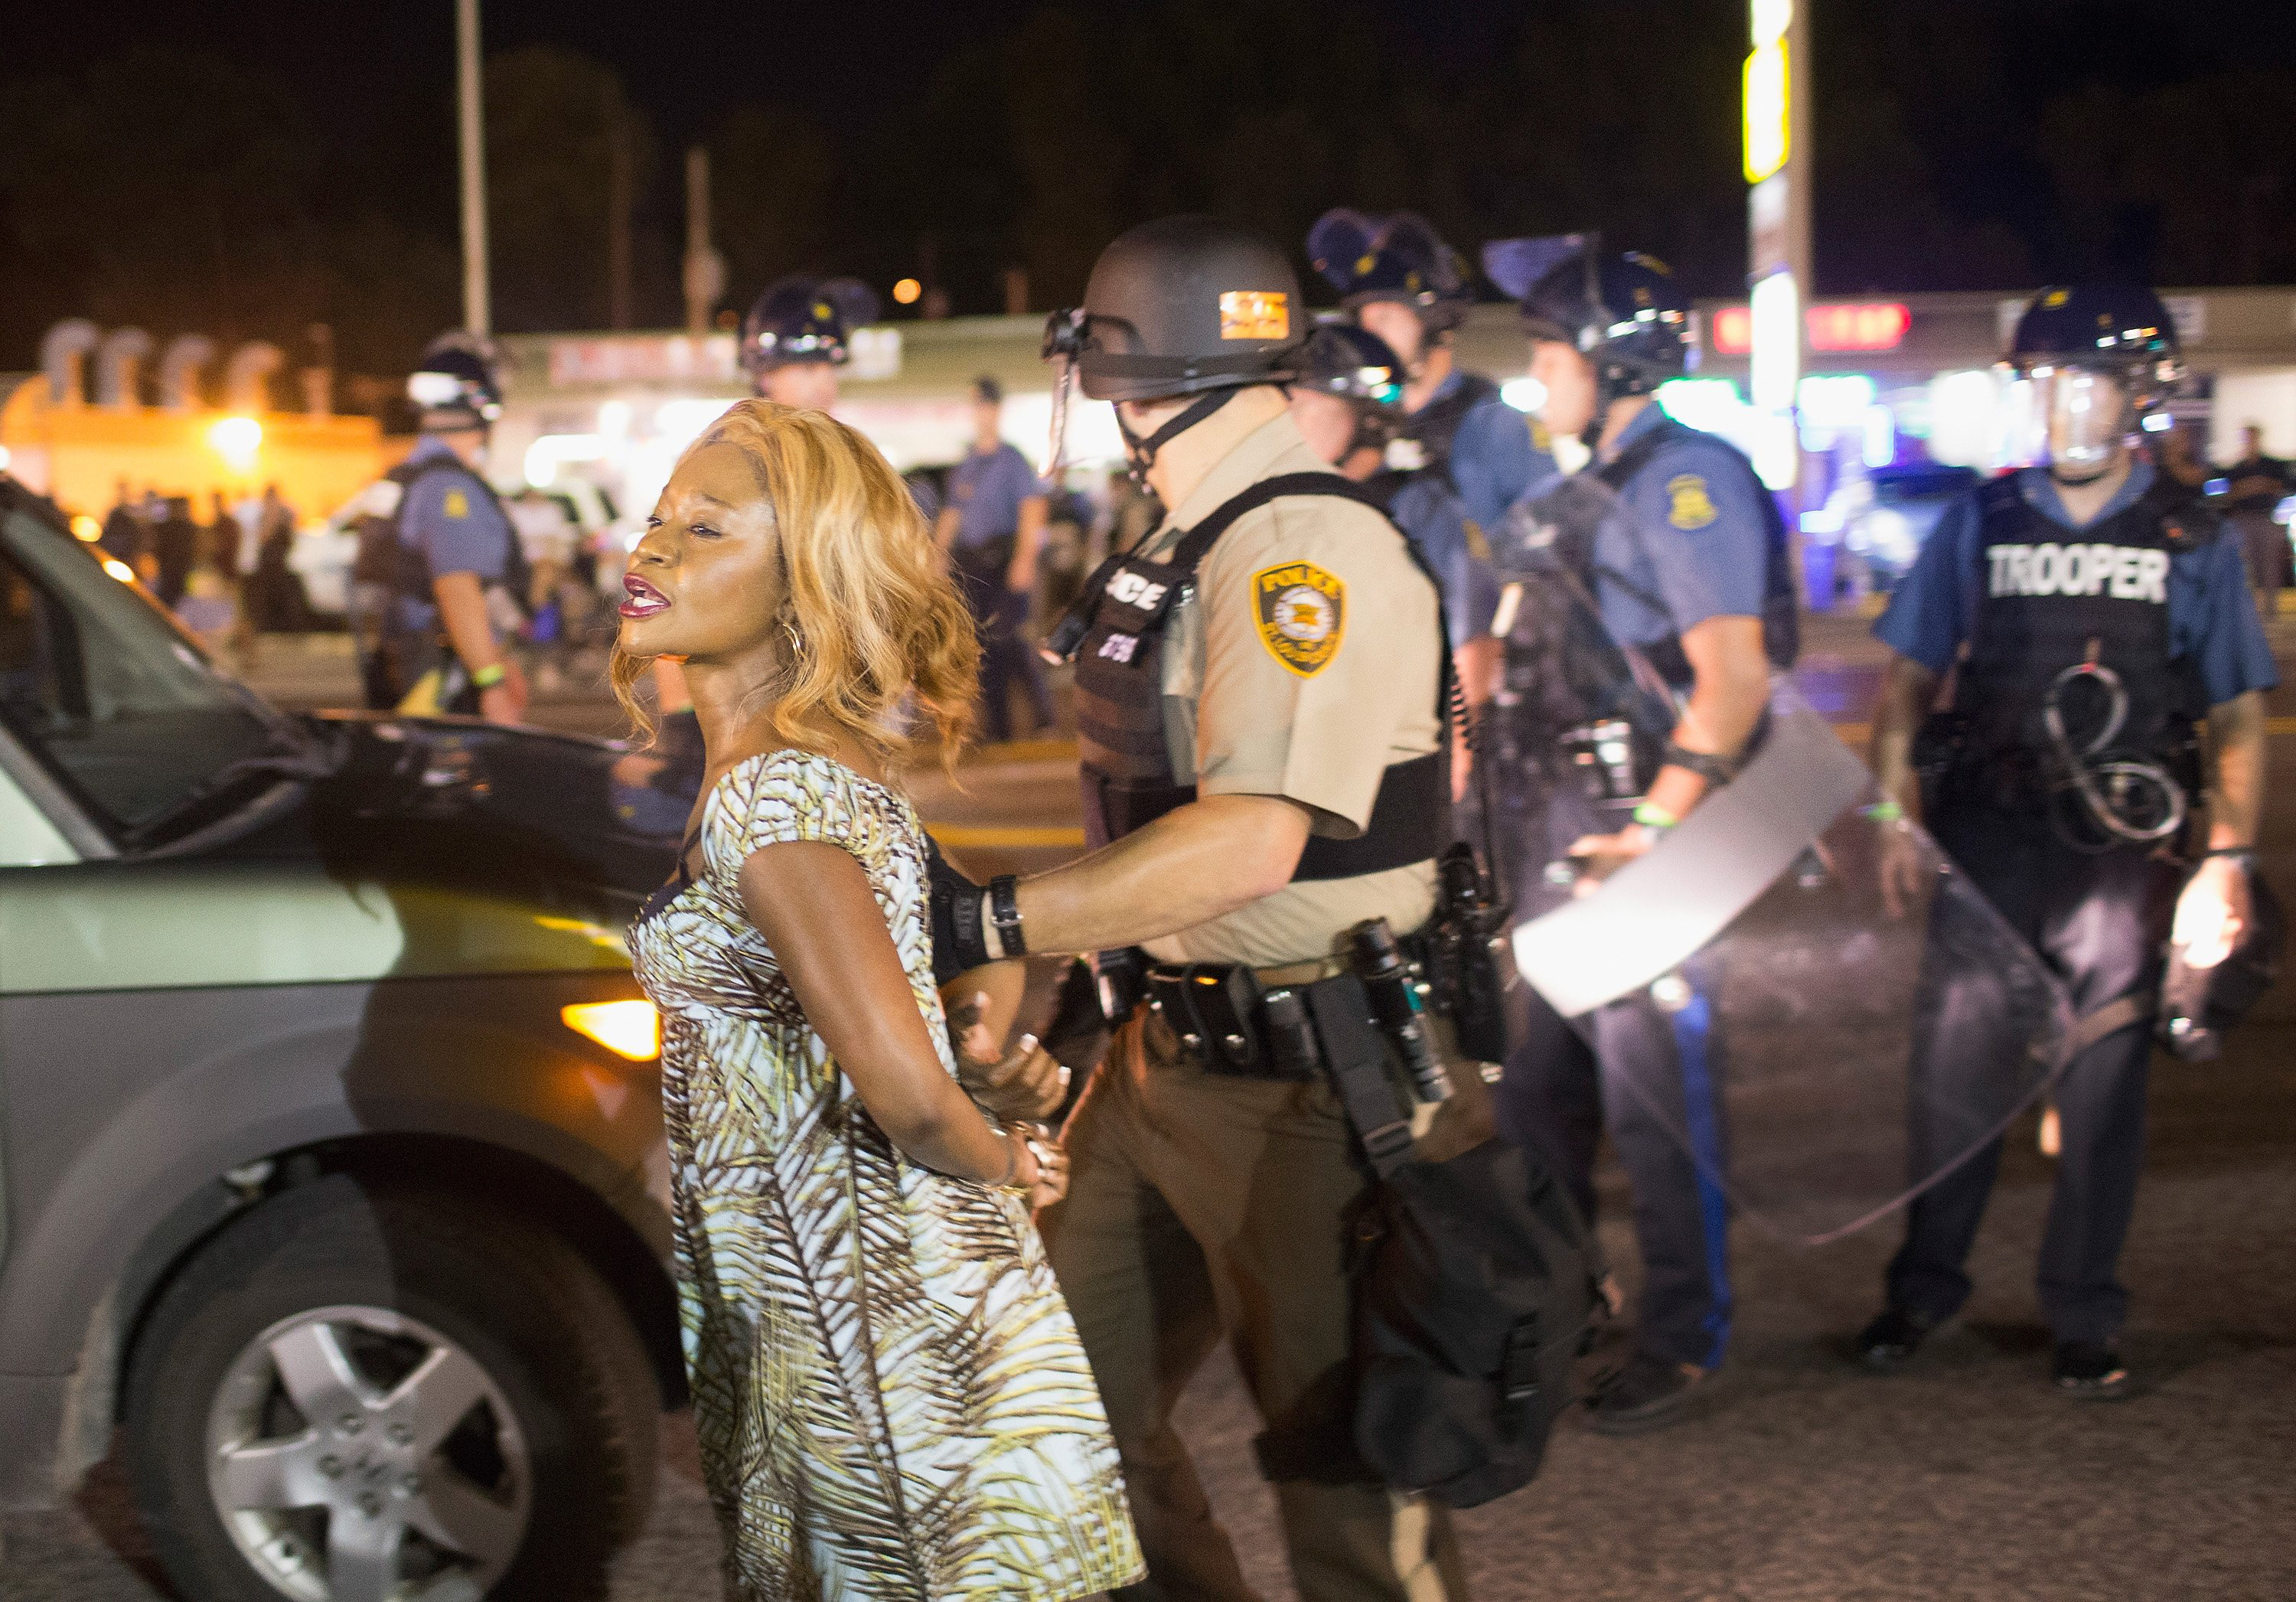 A demonstrator is arrested during a protest marking the one-year anniversary of the shooting of Michael Brown along West Florrisant Street on Aug. 10, 2015 in Ferguson, Mo.